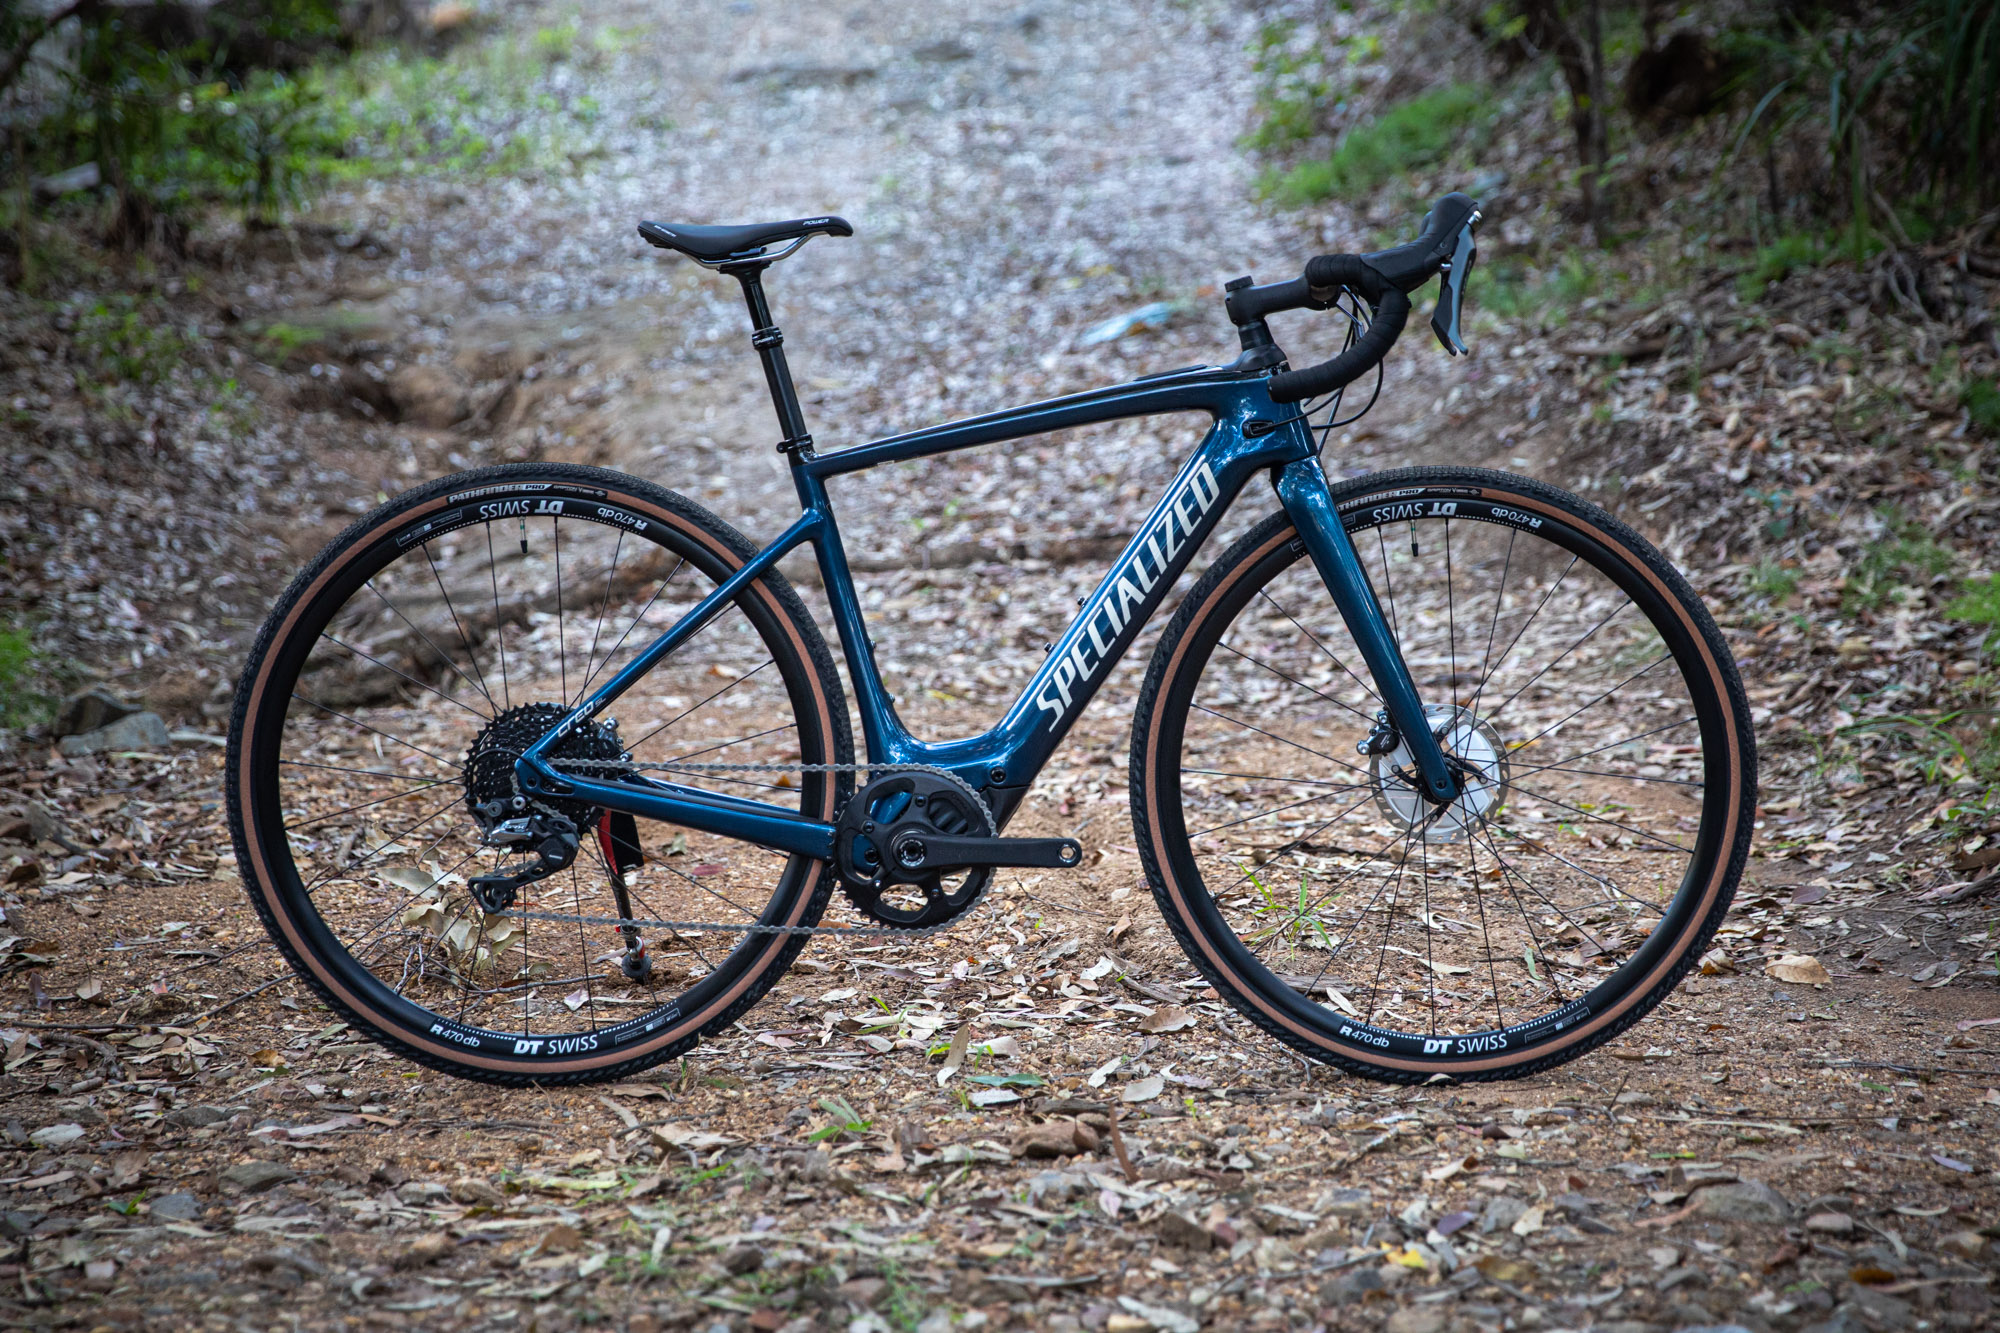 Specialized Turbo Creo SL Comp Carbon Evo review